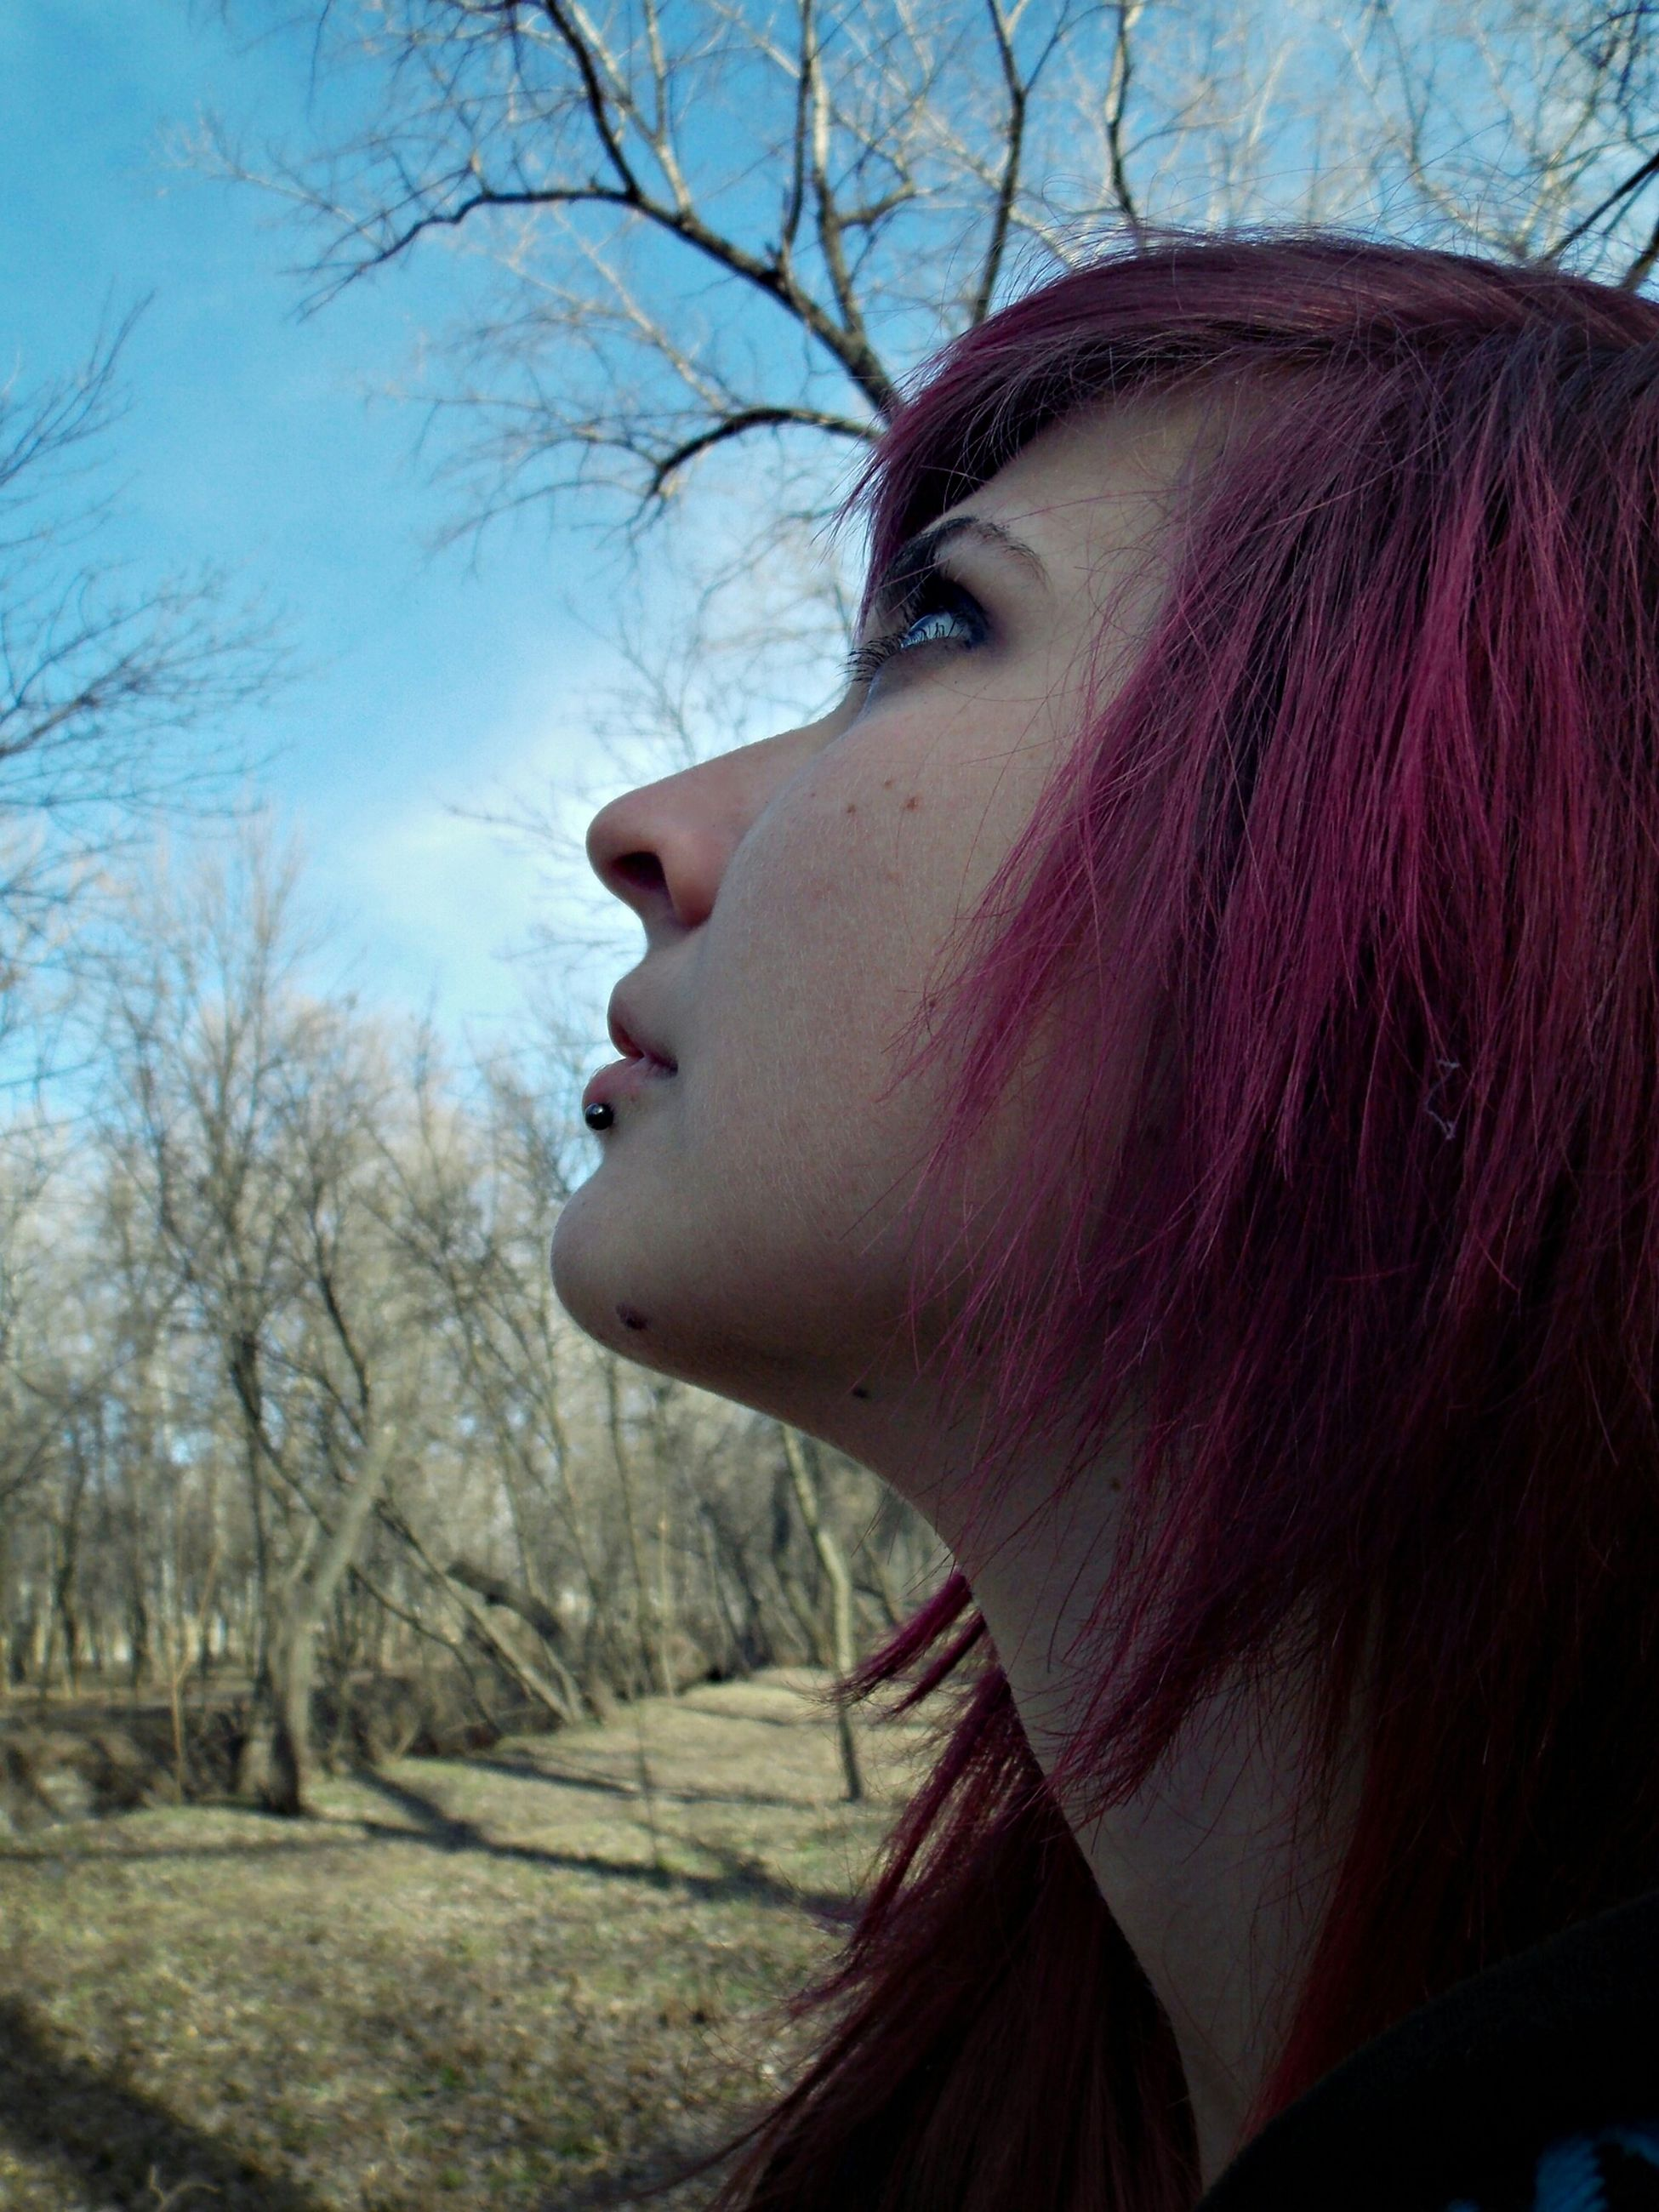 tree, bare tree, headshot, close-up, young adult, young women, long hair, lifestyles, focus on foreground, day, sunlight, outdoors, sky, leisure activity, branch, nature, person